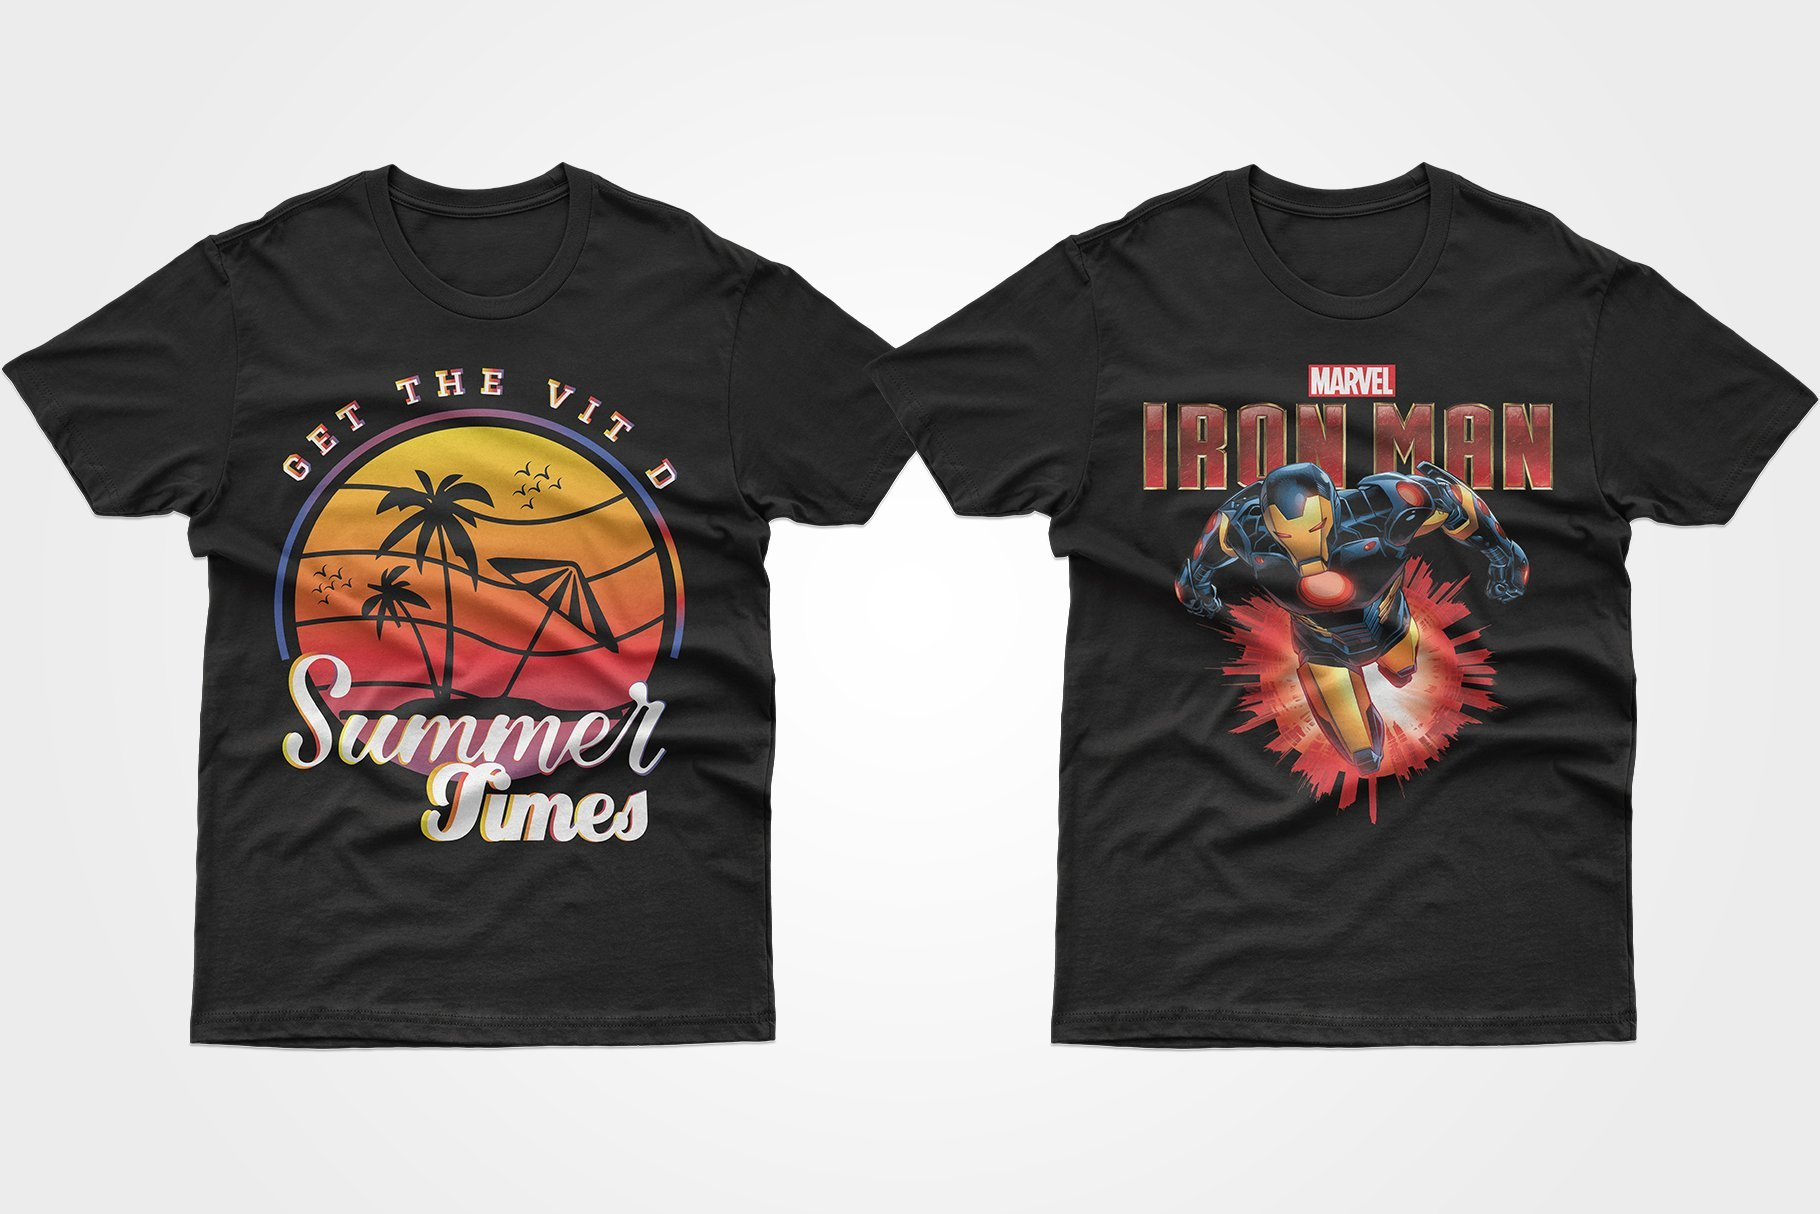 Two black T-shirts - one with a summer sunset, the other with an Iron Man.